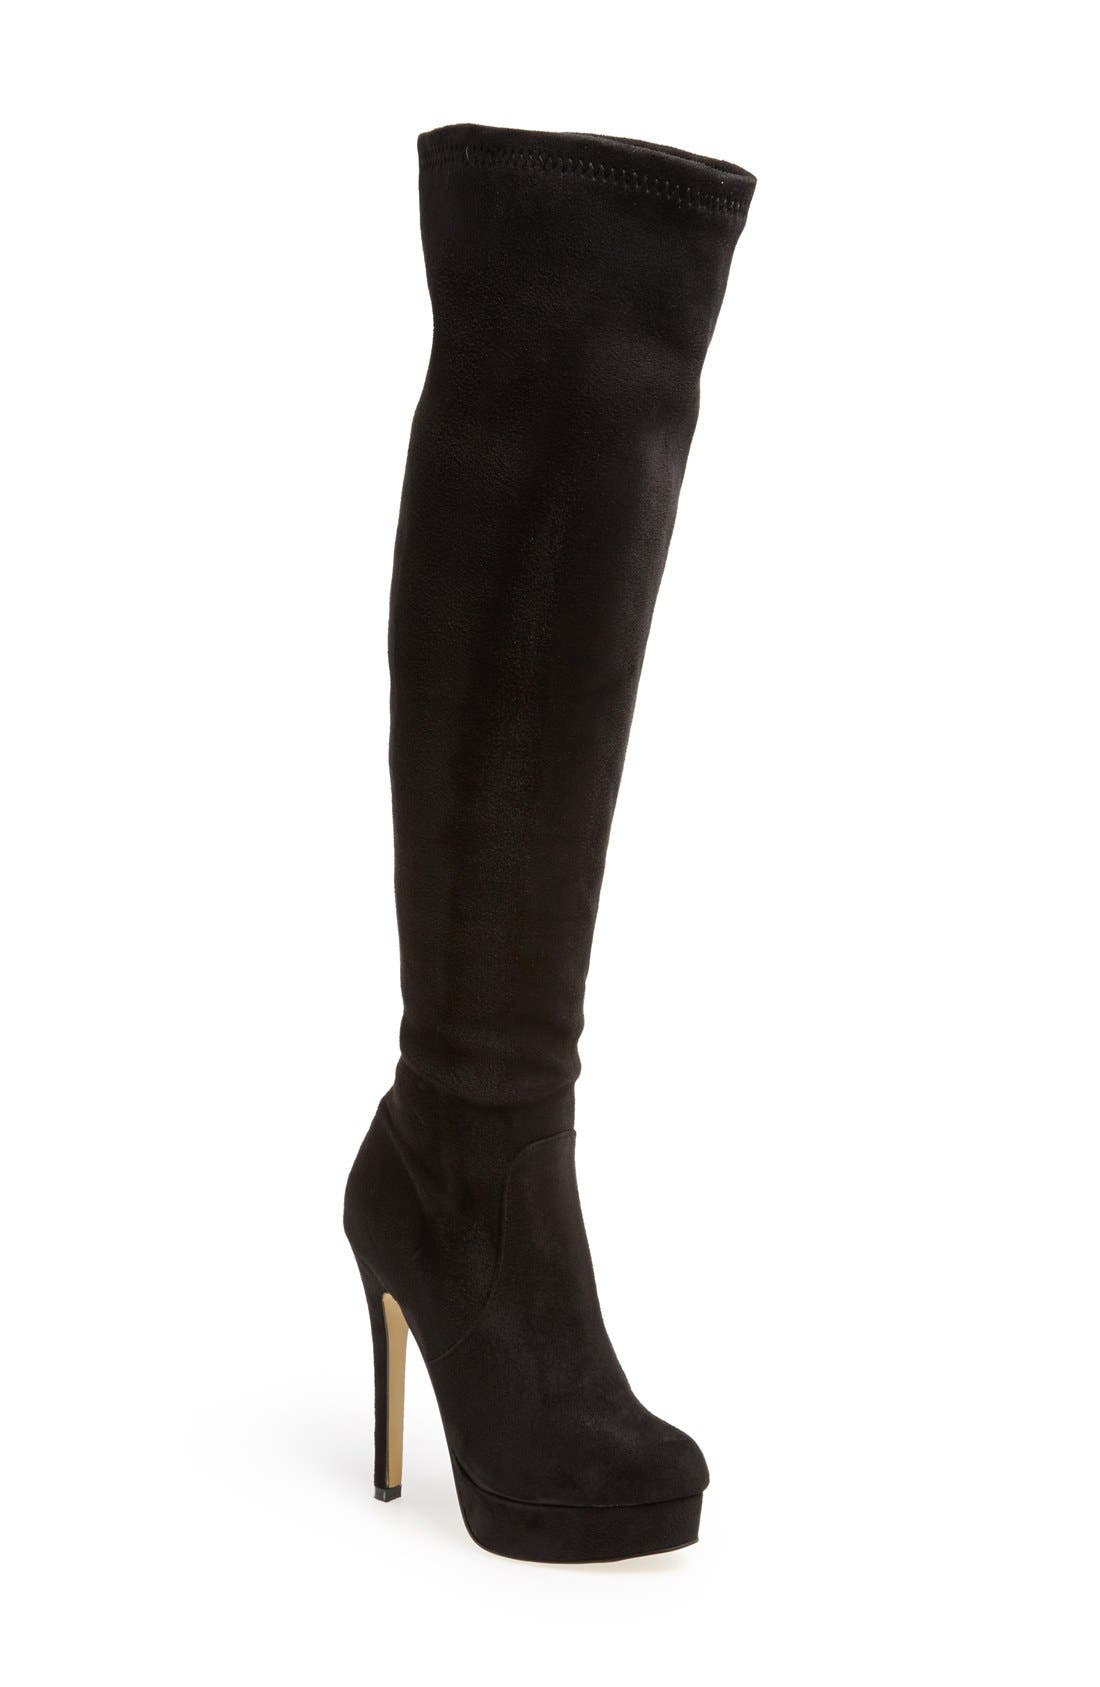 Alternate Image 1 Selected - Chinese Laundry 'Luster' Over the Knee Platform Boot (Women)